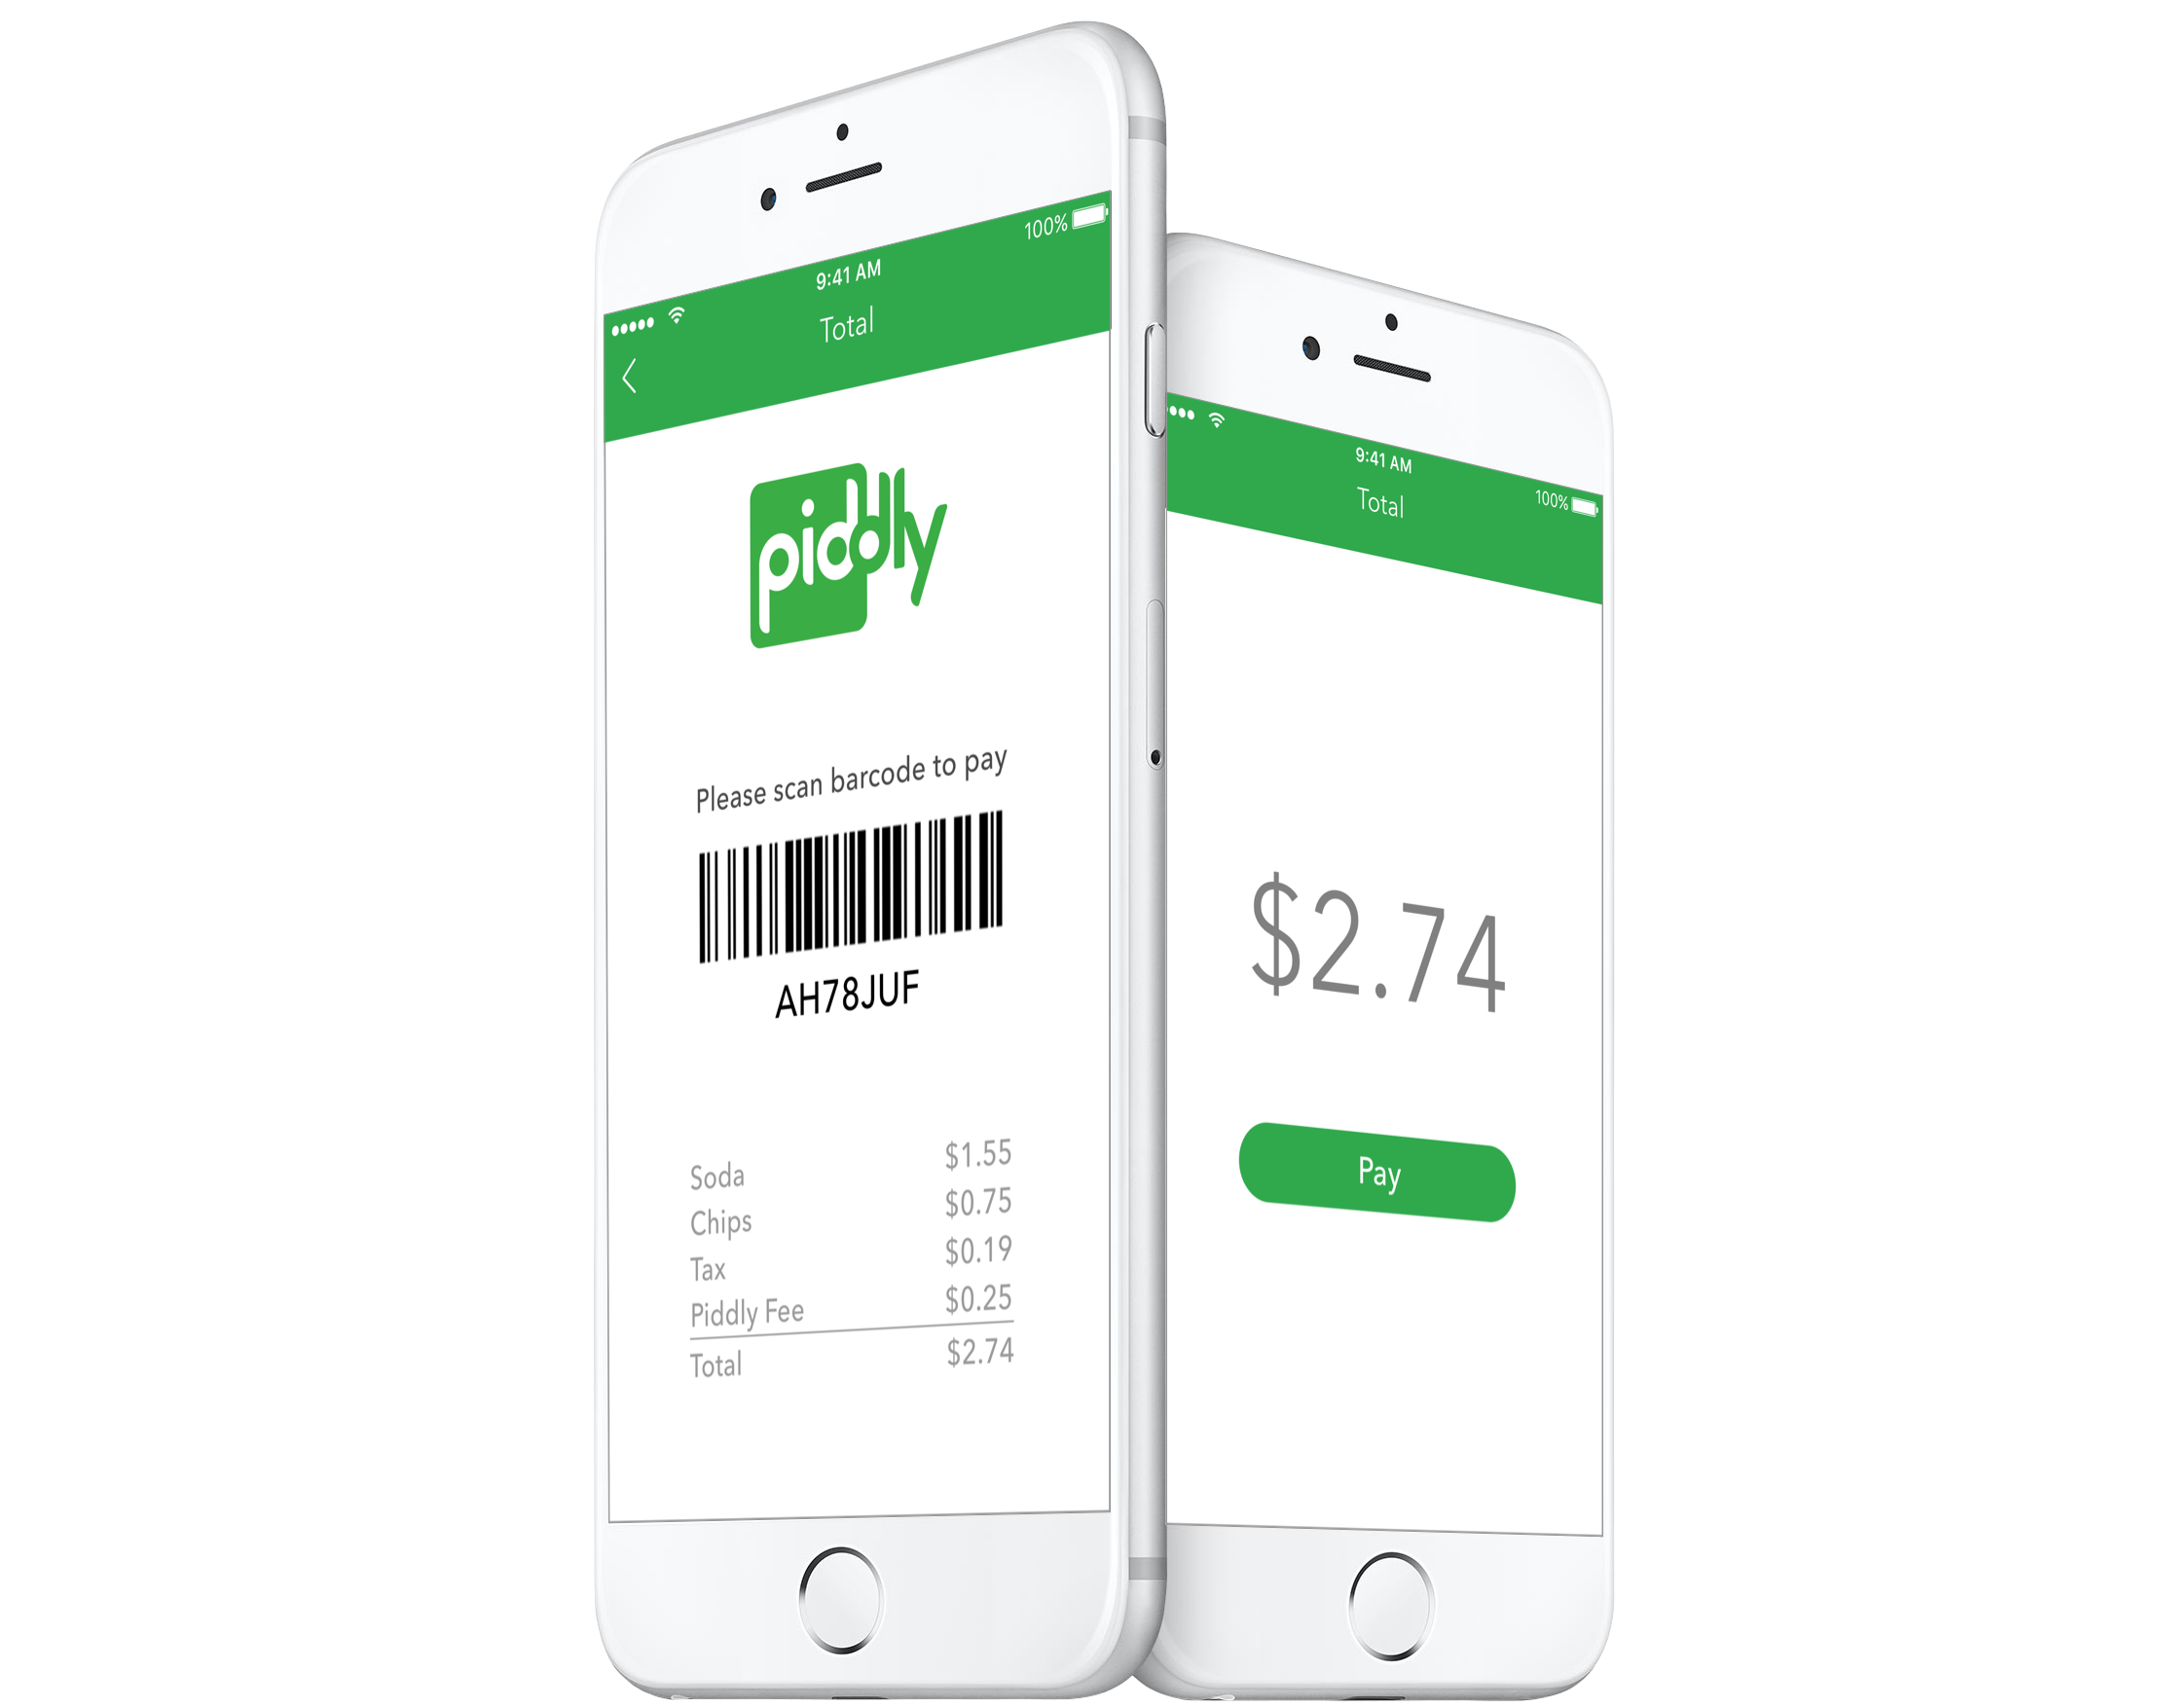 ios mobile payment app